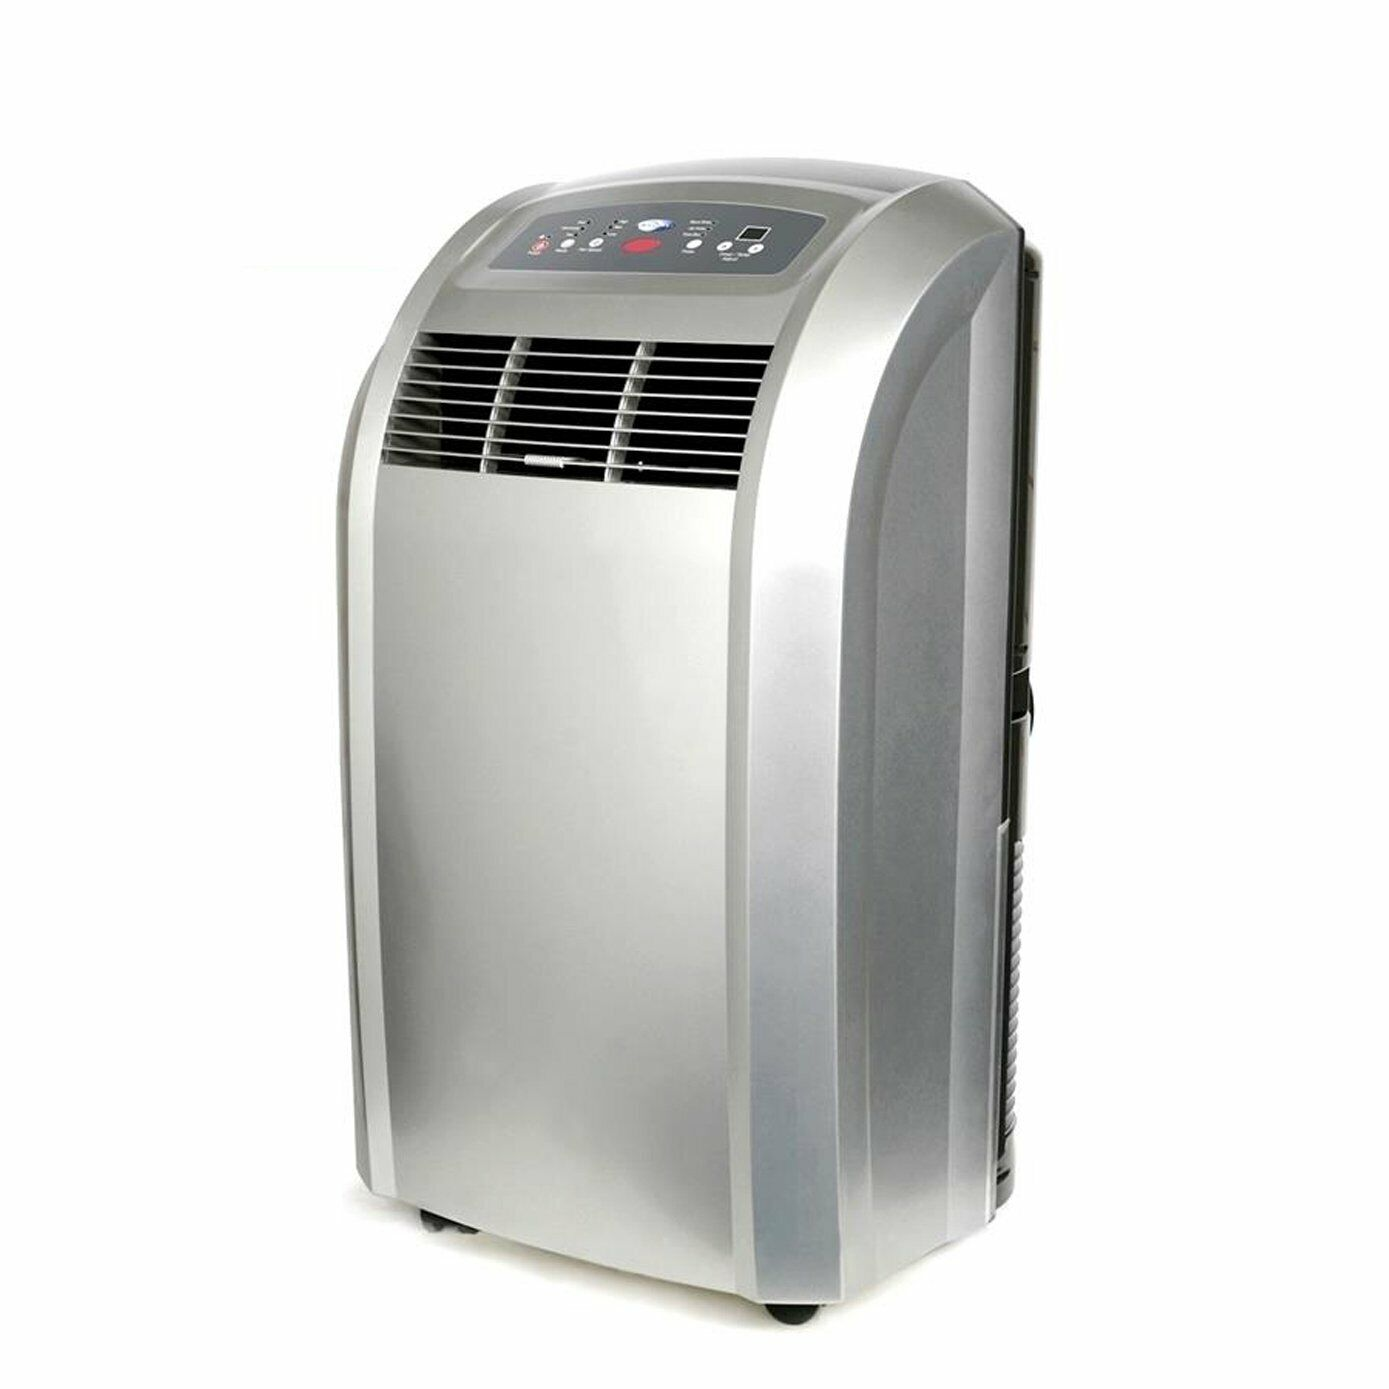 Eco-Friendly Portable Air Conditioner in Platinum